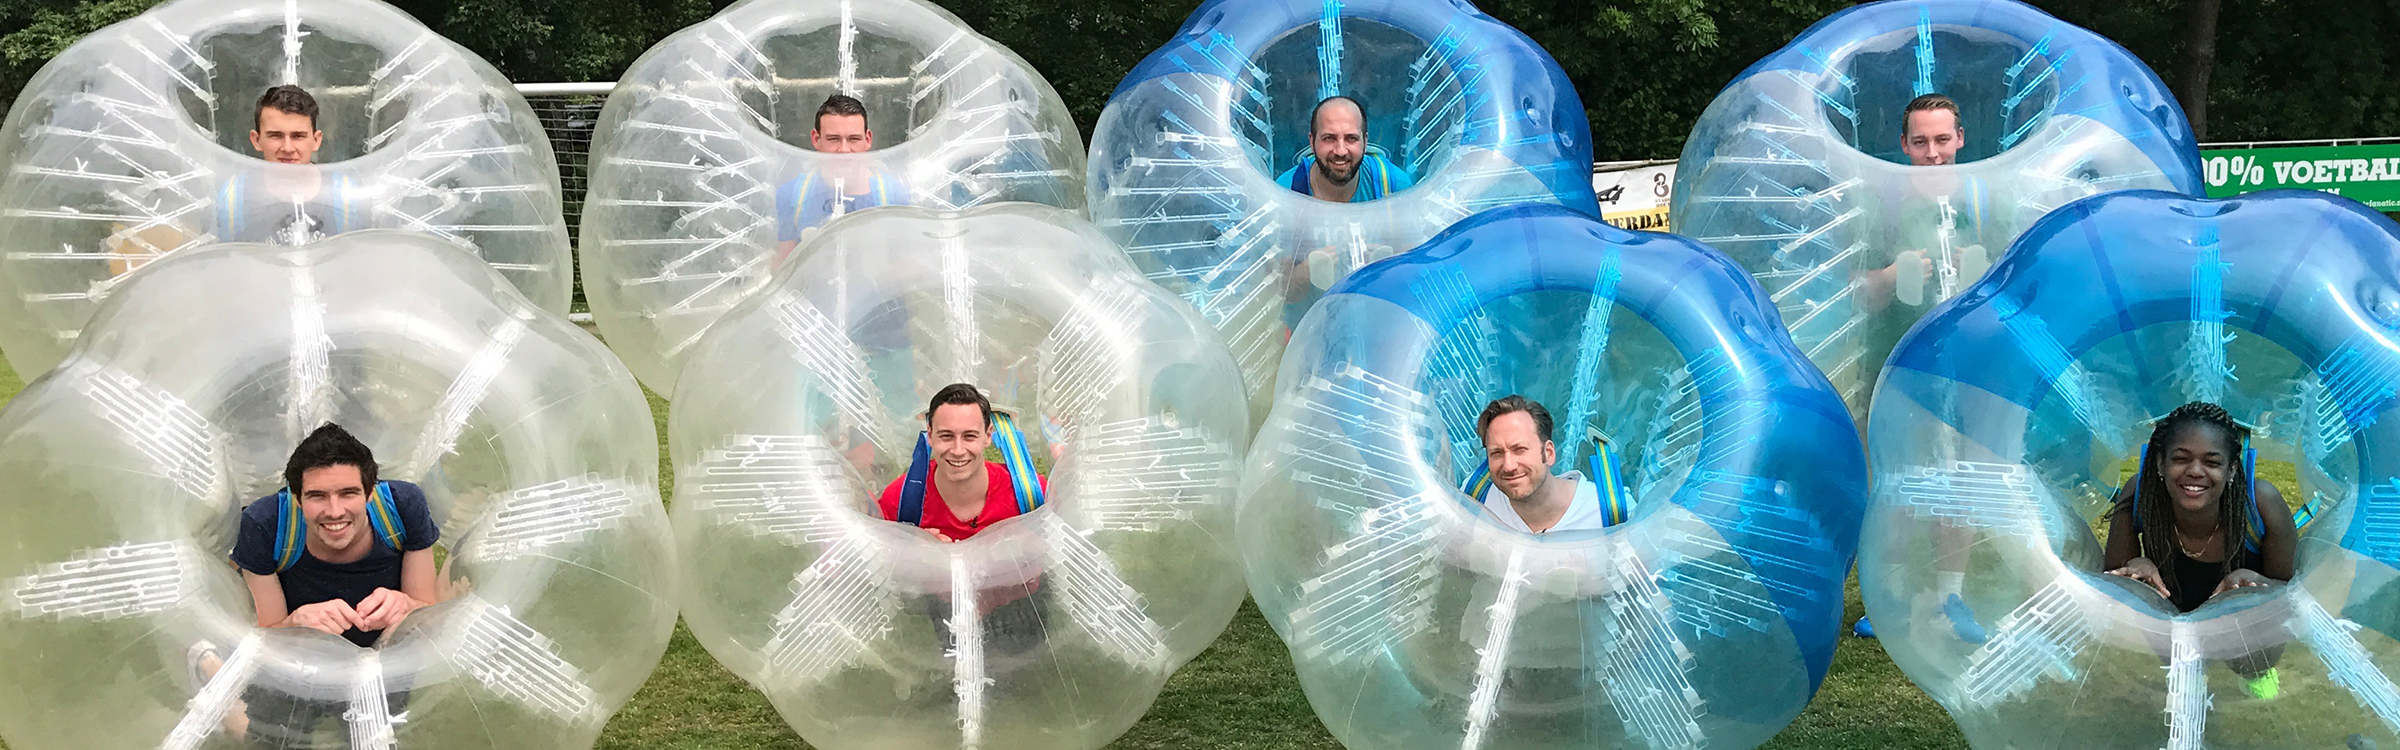 Bubble voetbal   header